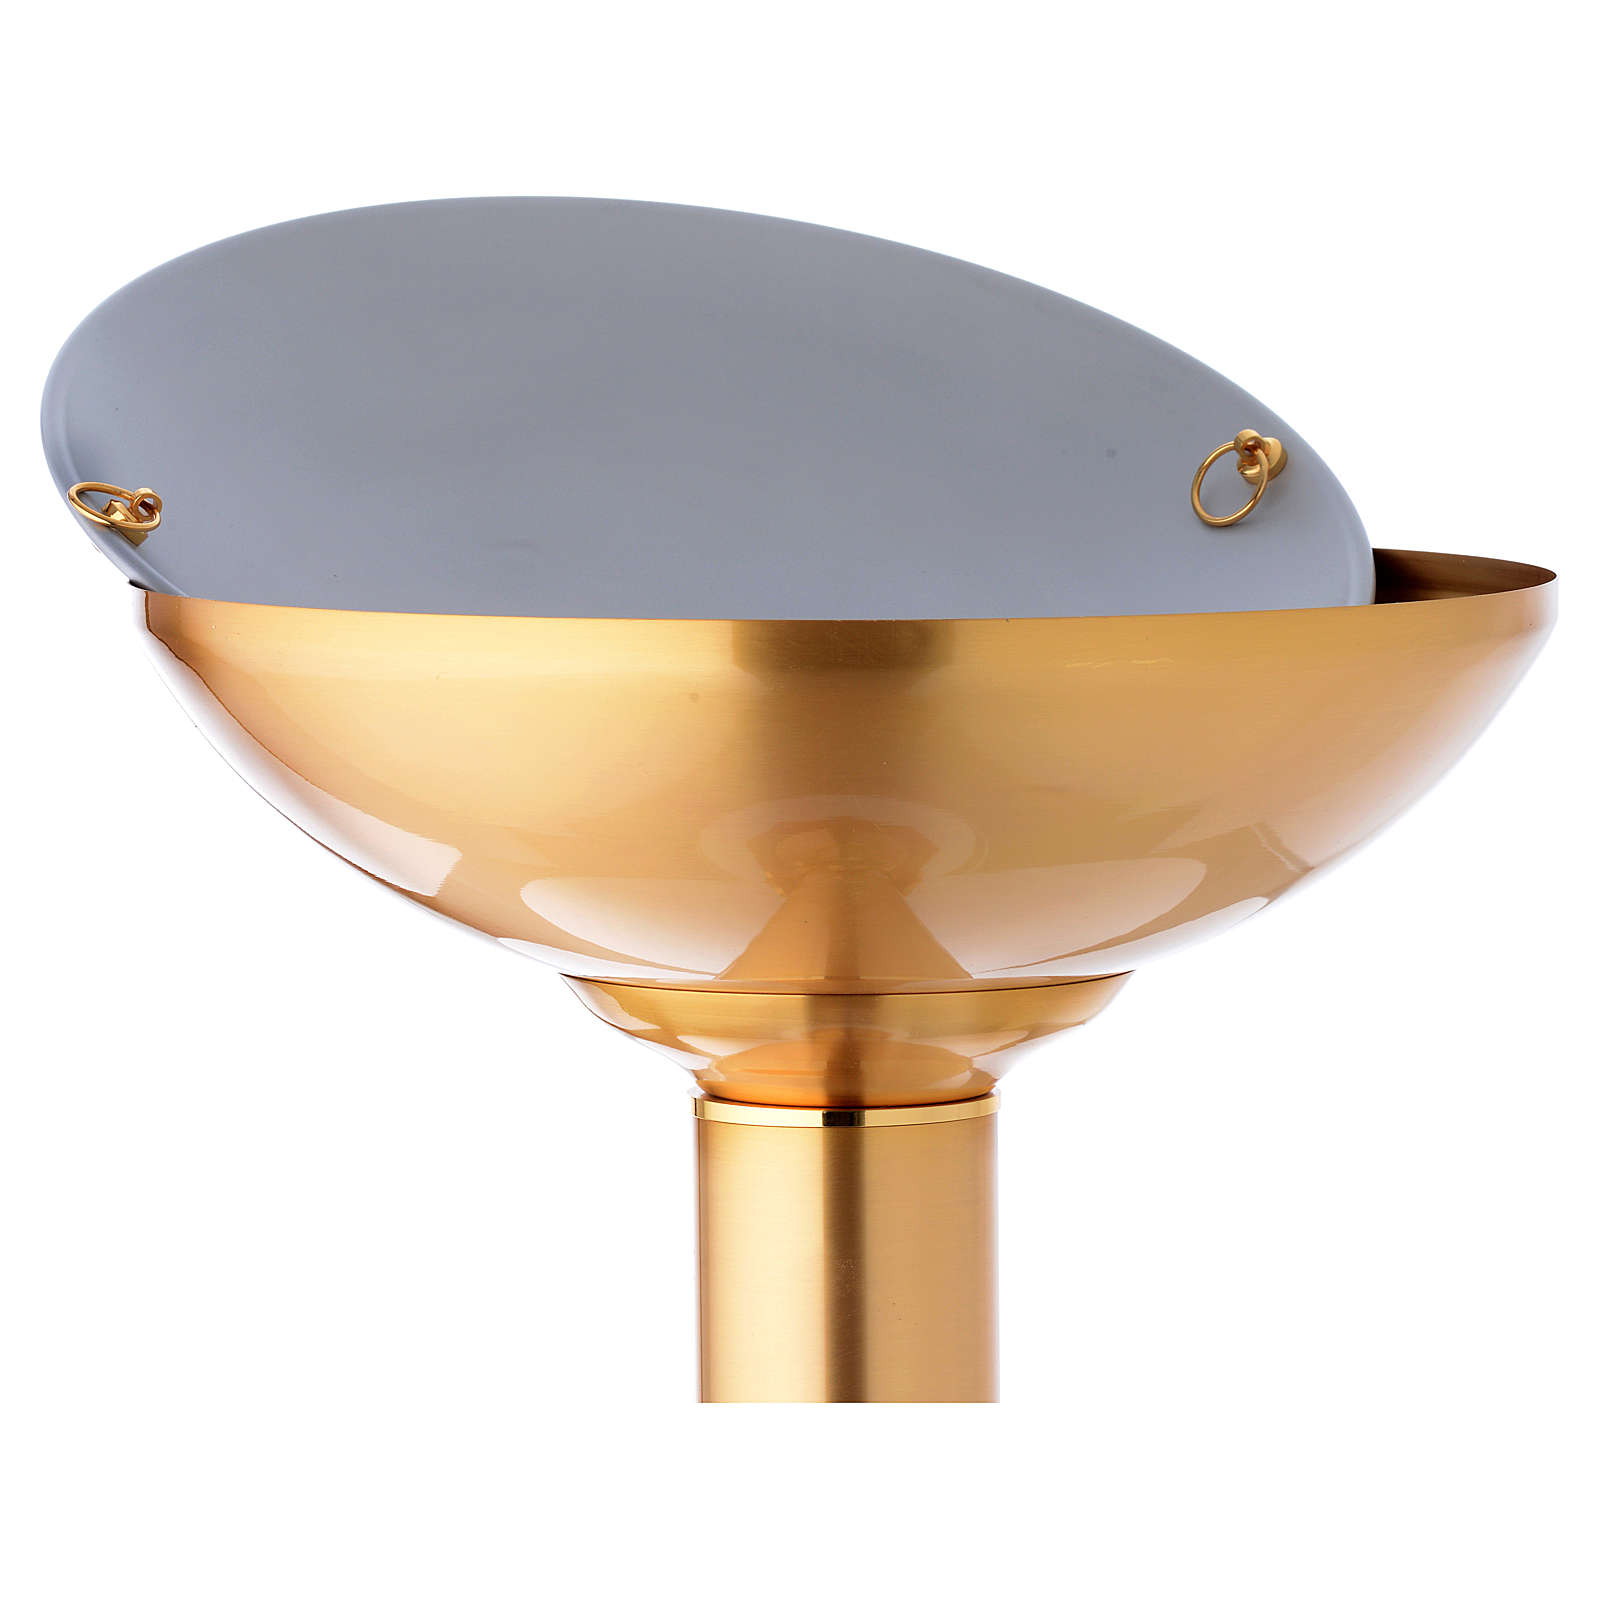 Baptismal Font gold plated with blue nickel decorations 4